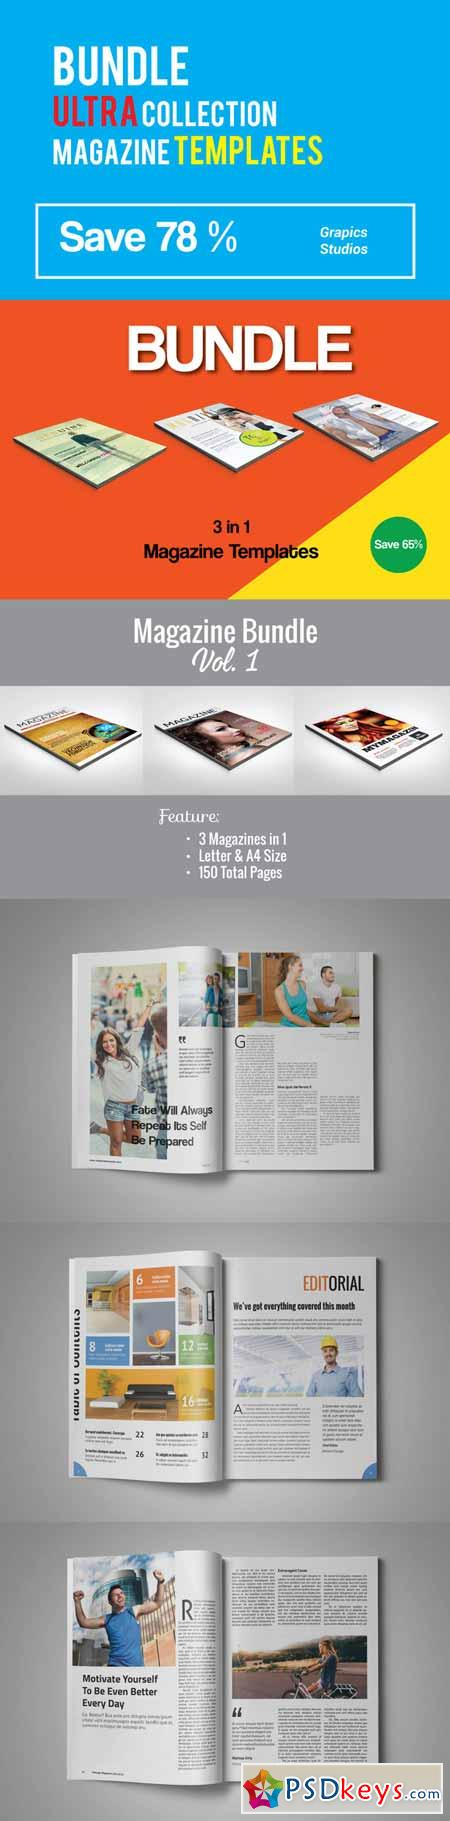 ULTRA Bundle Magazines 457652